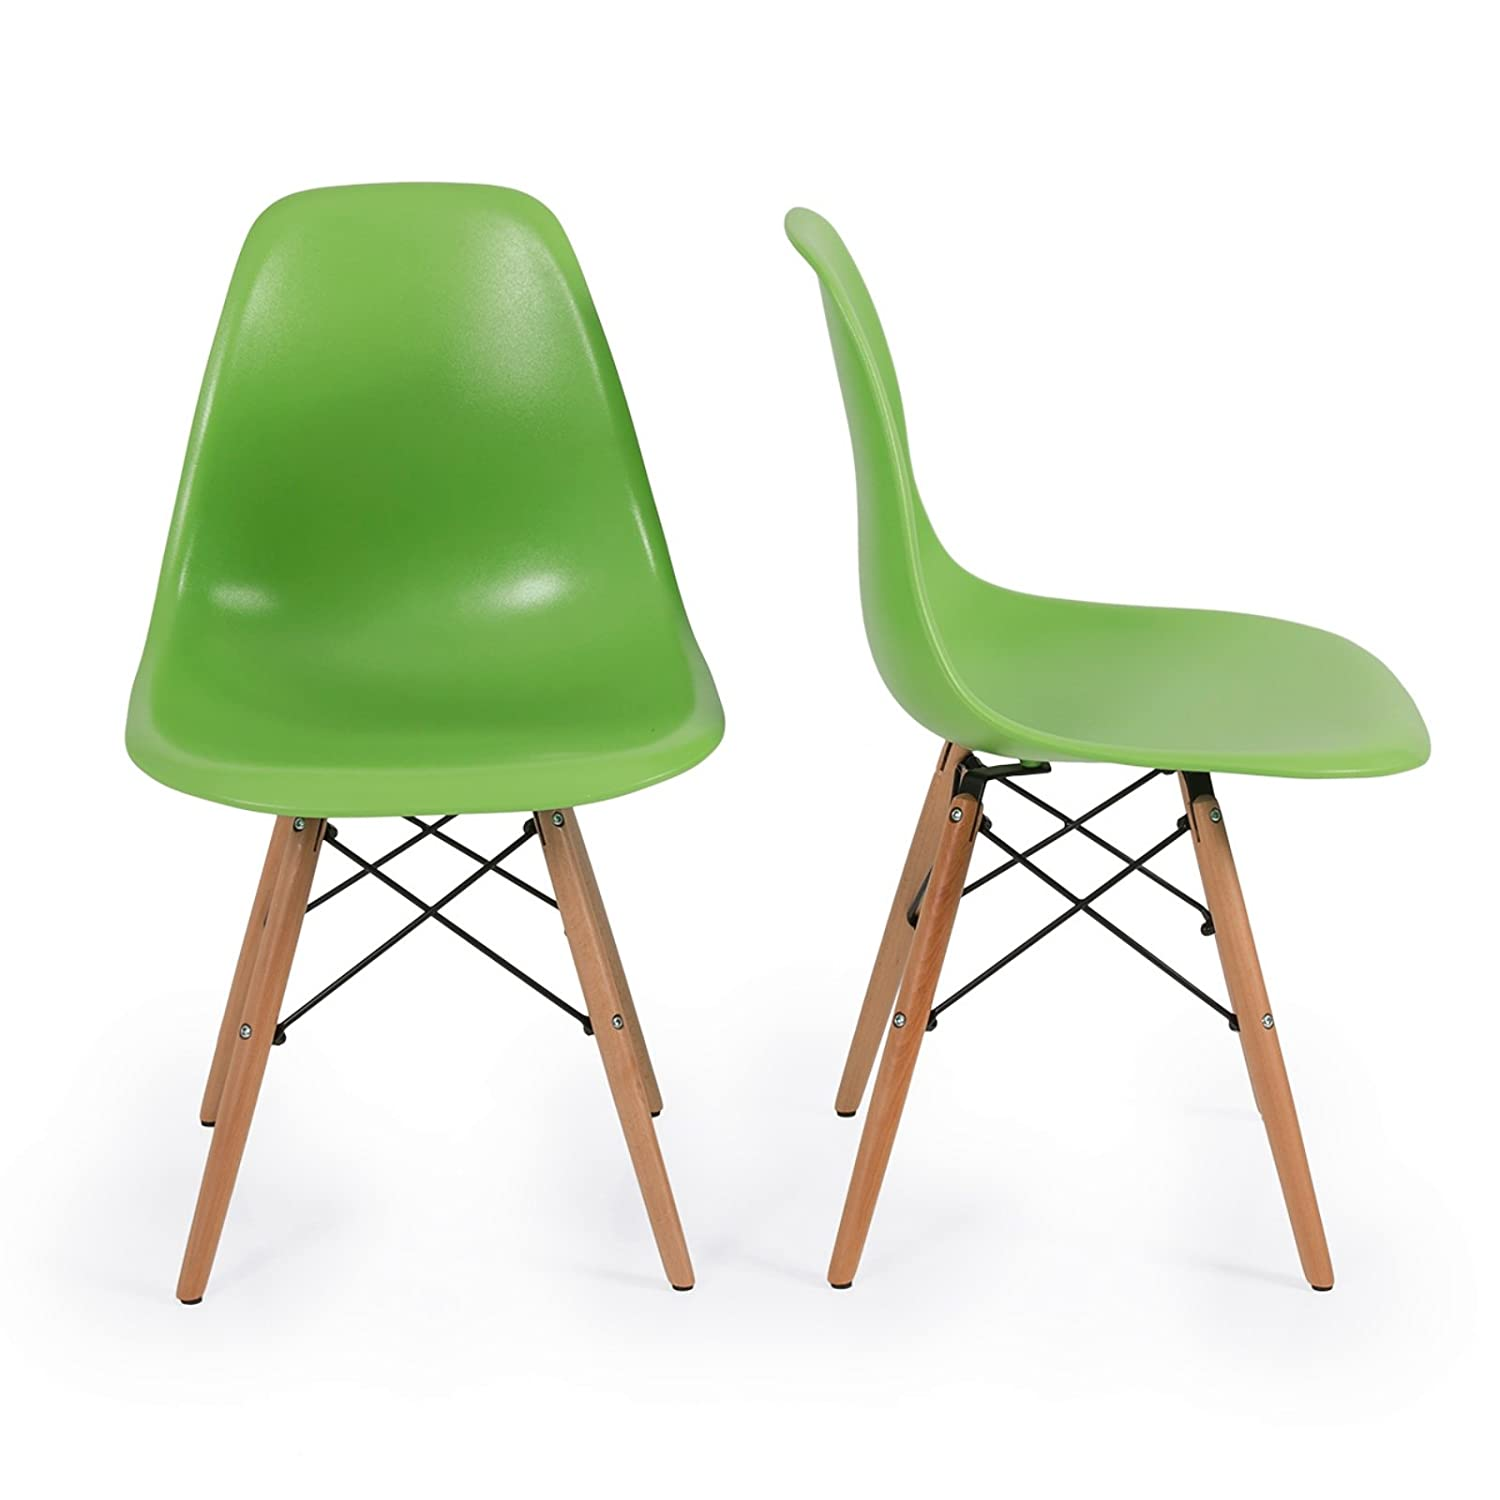 koonlert14 Set of 2 Retro Style Wood Base Mid Century Modern Shell Dining wooden Chair Dowel legs Green #566